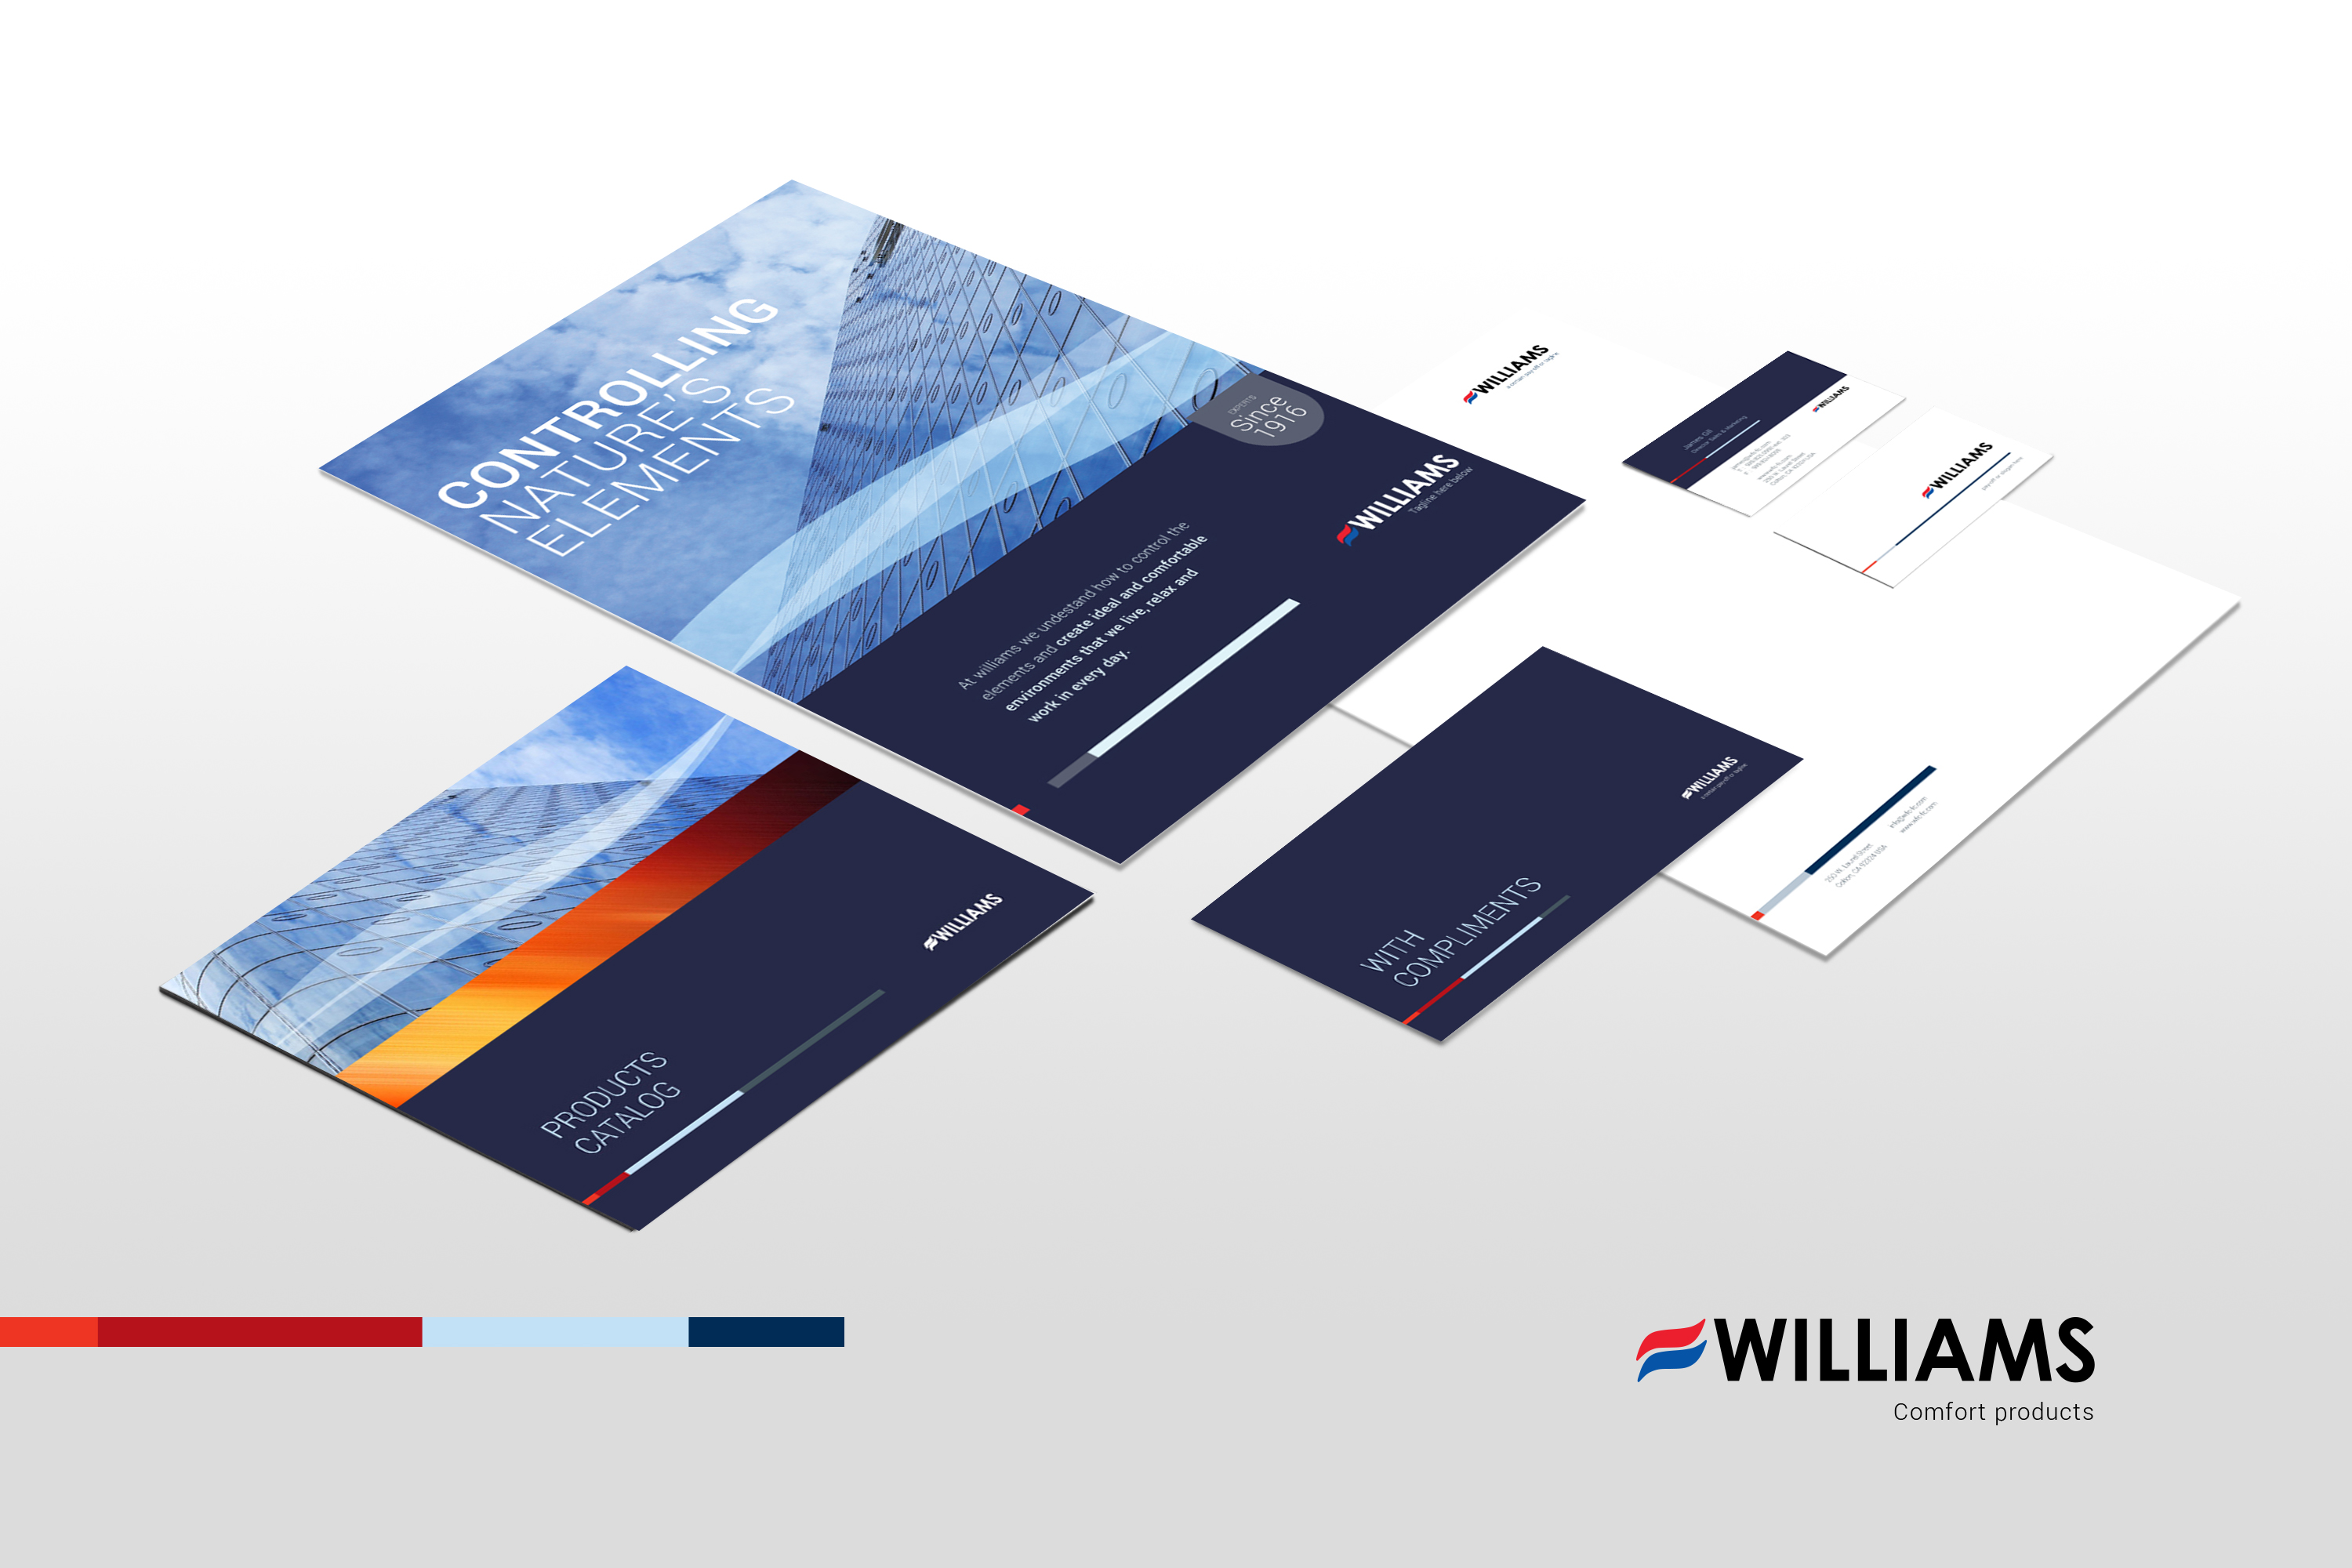 Branding by mercl.com - williams comfort products